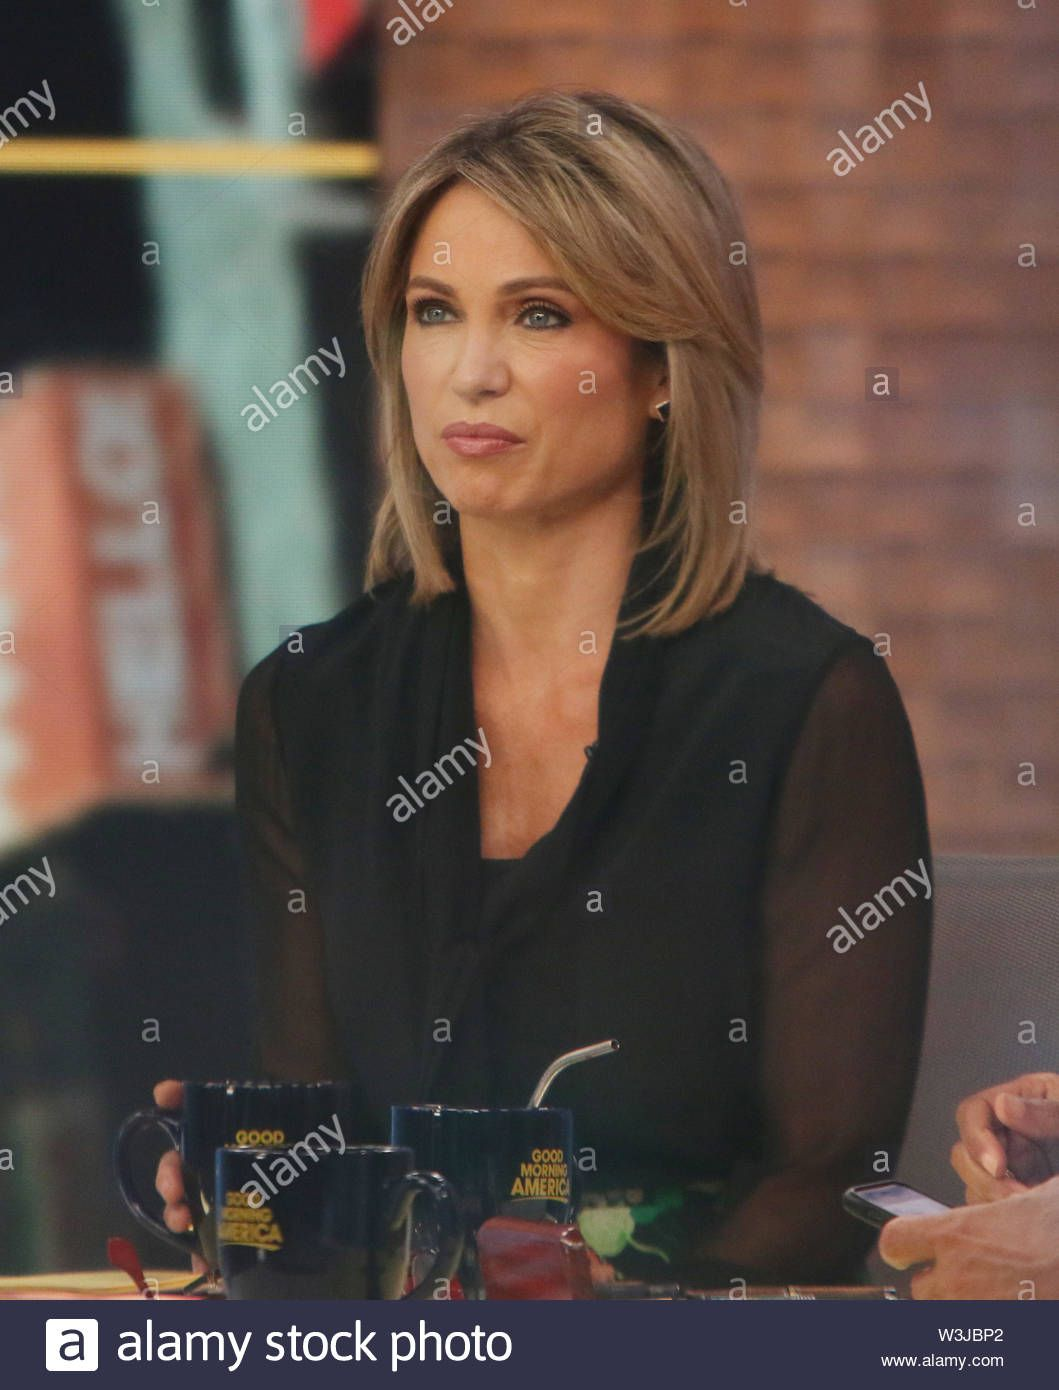 Download This Stock Image July 15 2019 Amy Robach On Good Morning America In New York July 15 2019 Credit Rw Mediapunch Amy Robach Good Morning America Amy